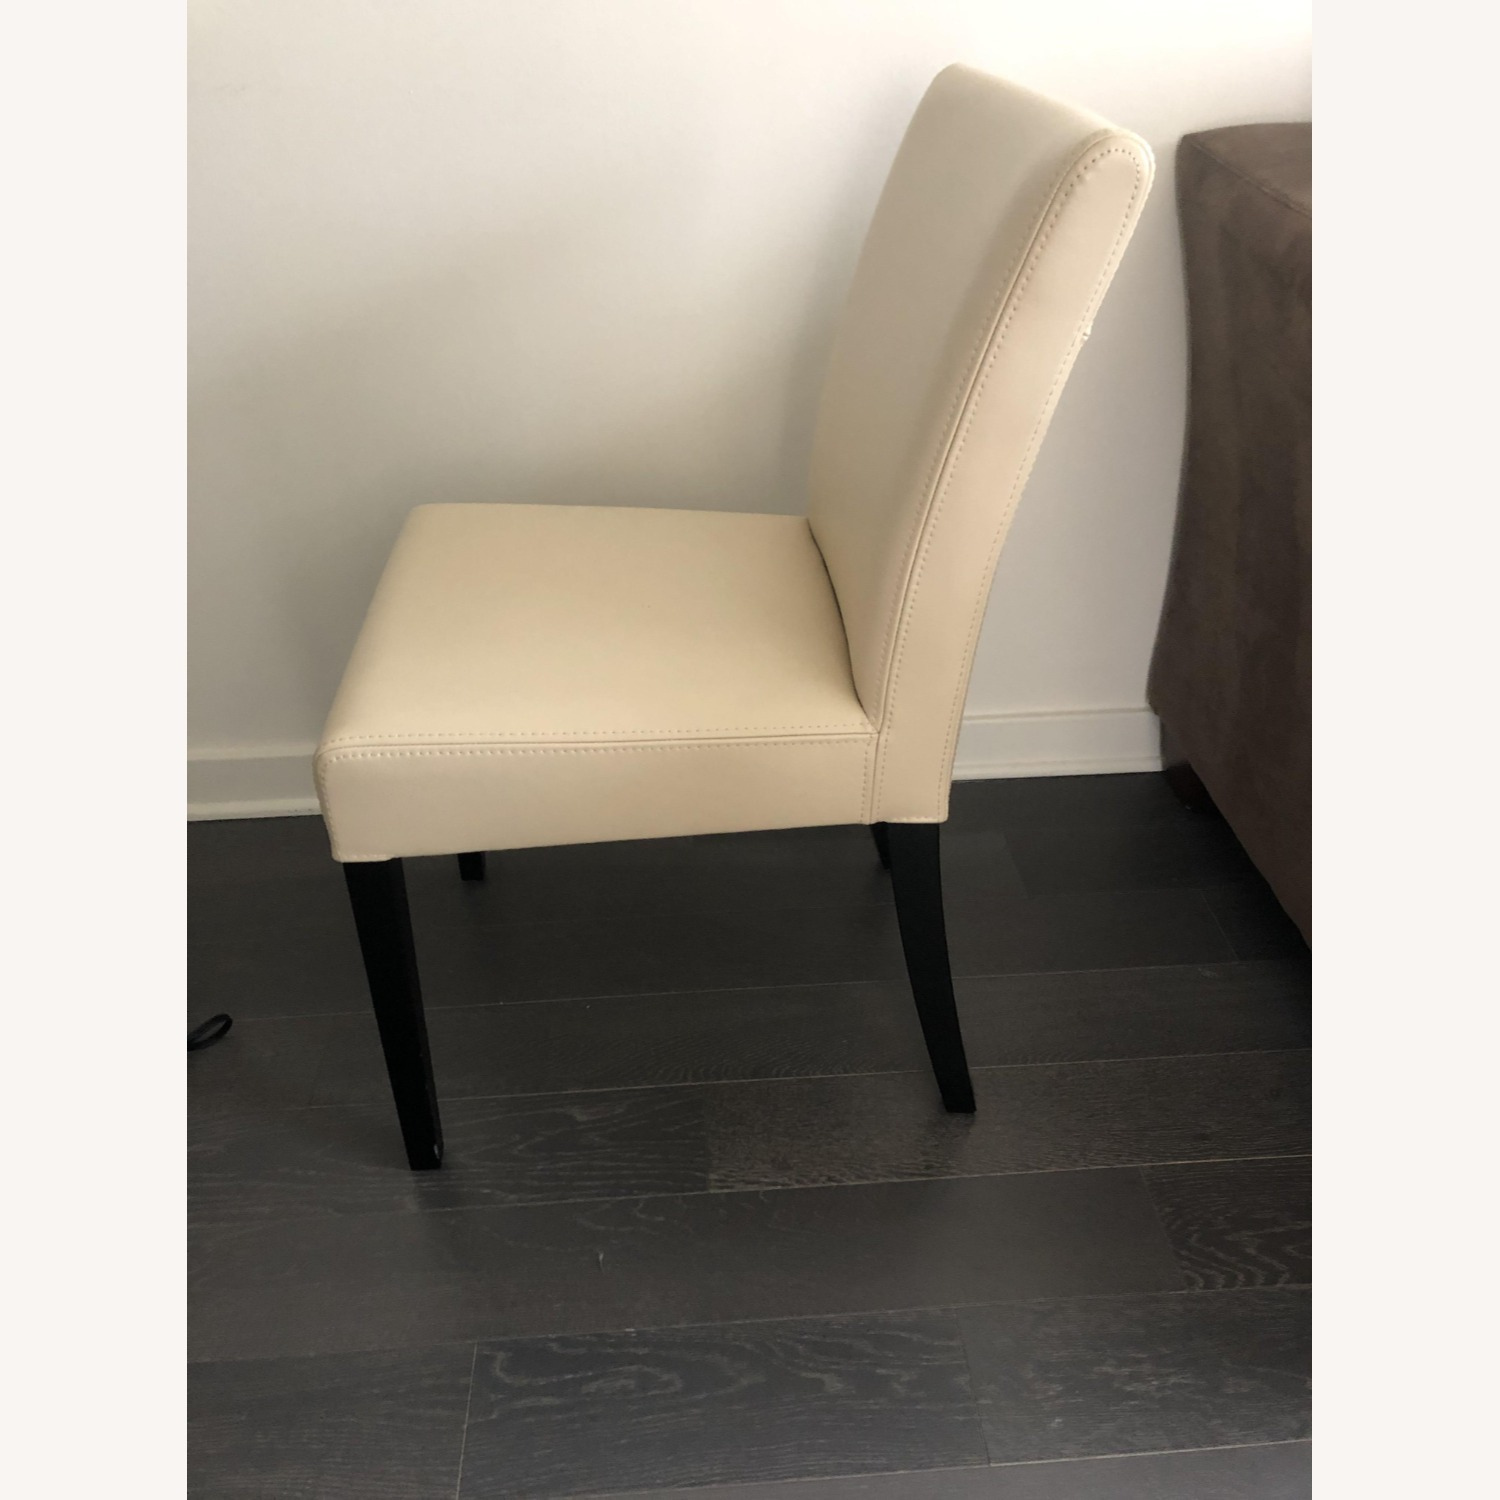 Crate & Barrel Lowe Ivory Leather Dining Chair - image-2